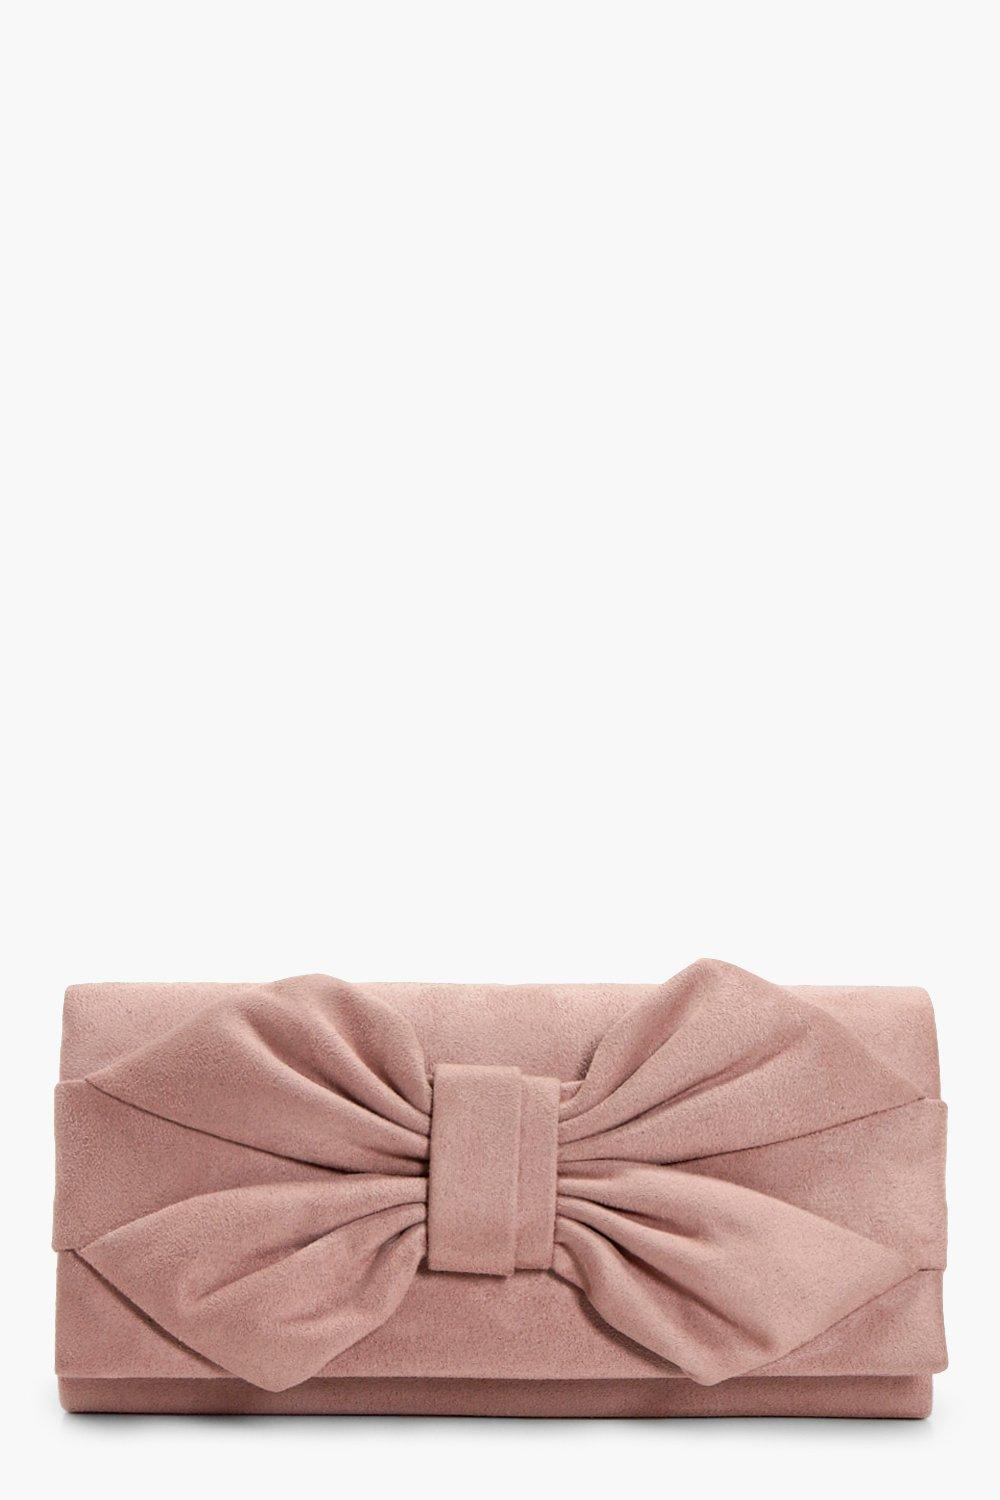 Bow Clutch - nude - Daisy Bow Clutch - nude